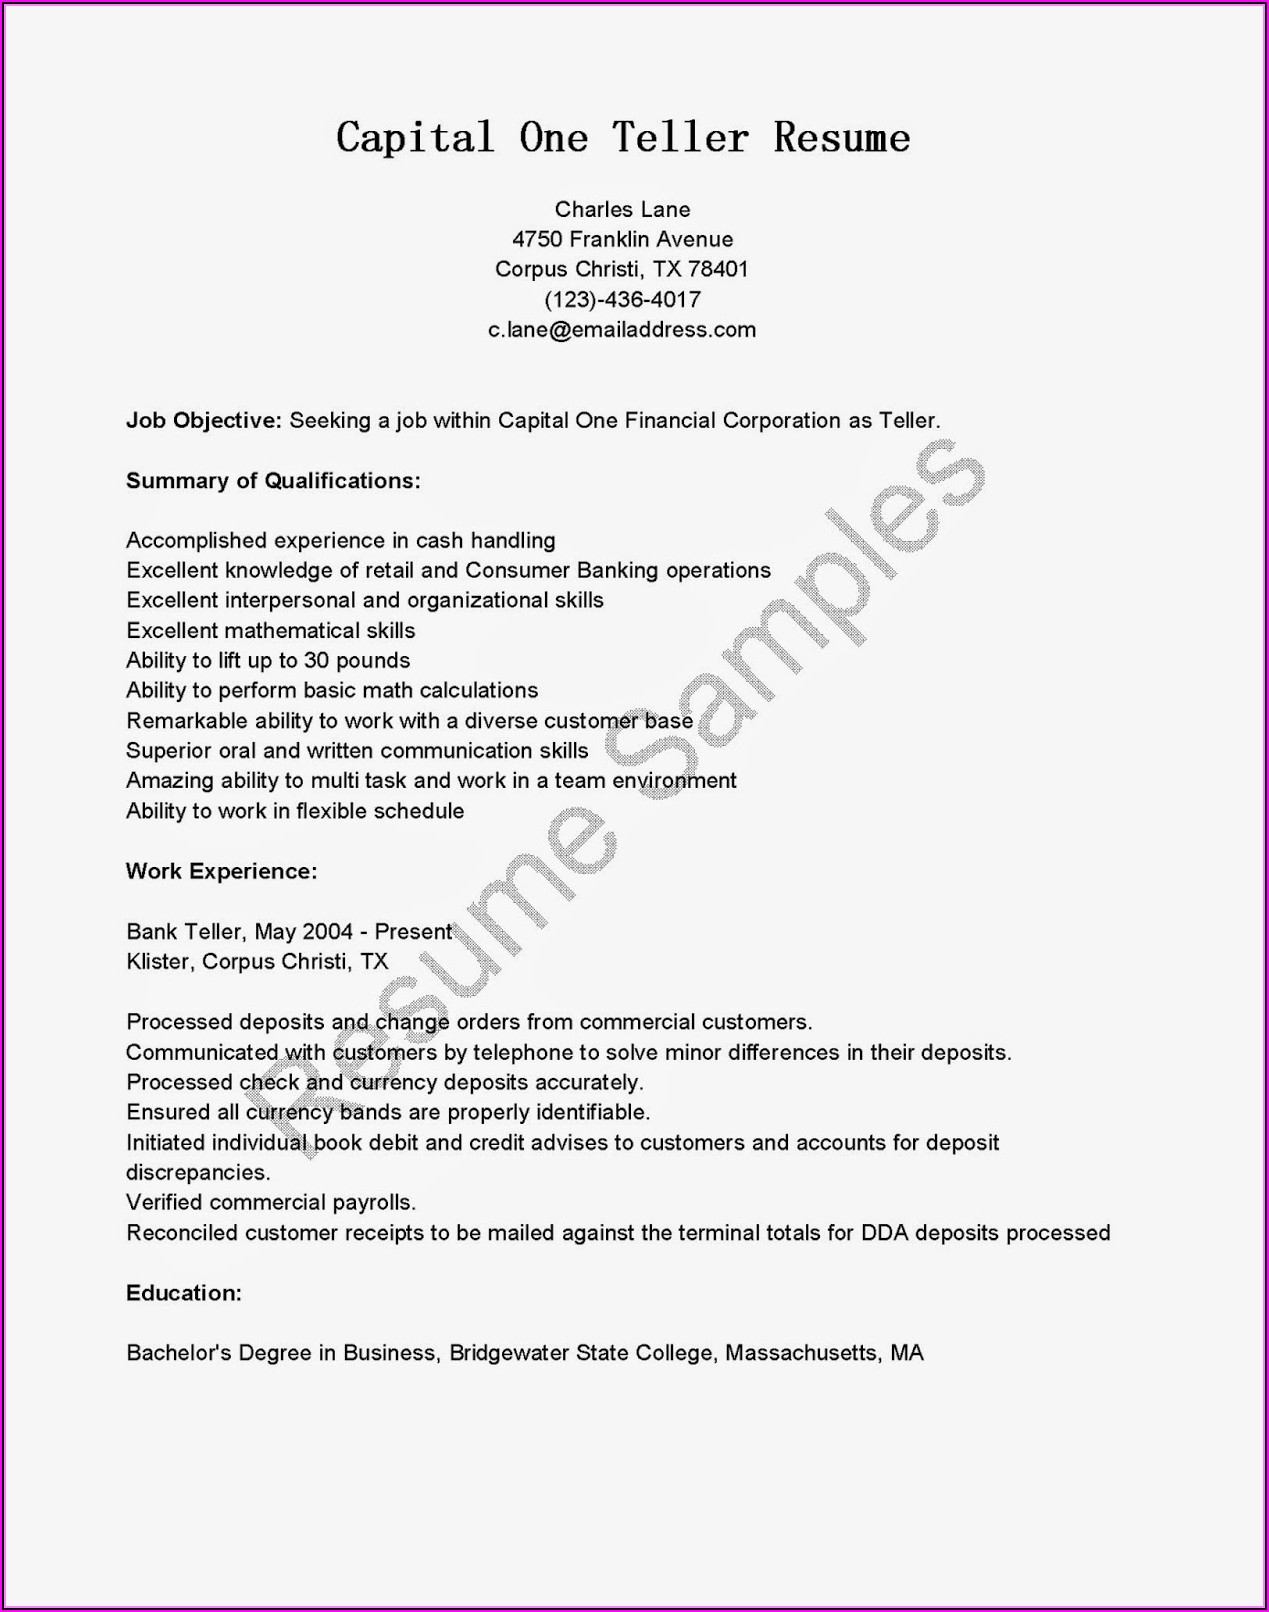 Professional Nursing Resume Services